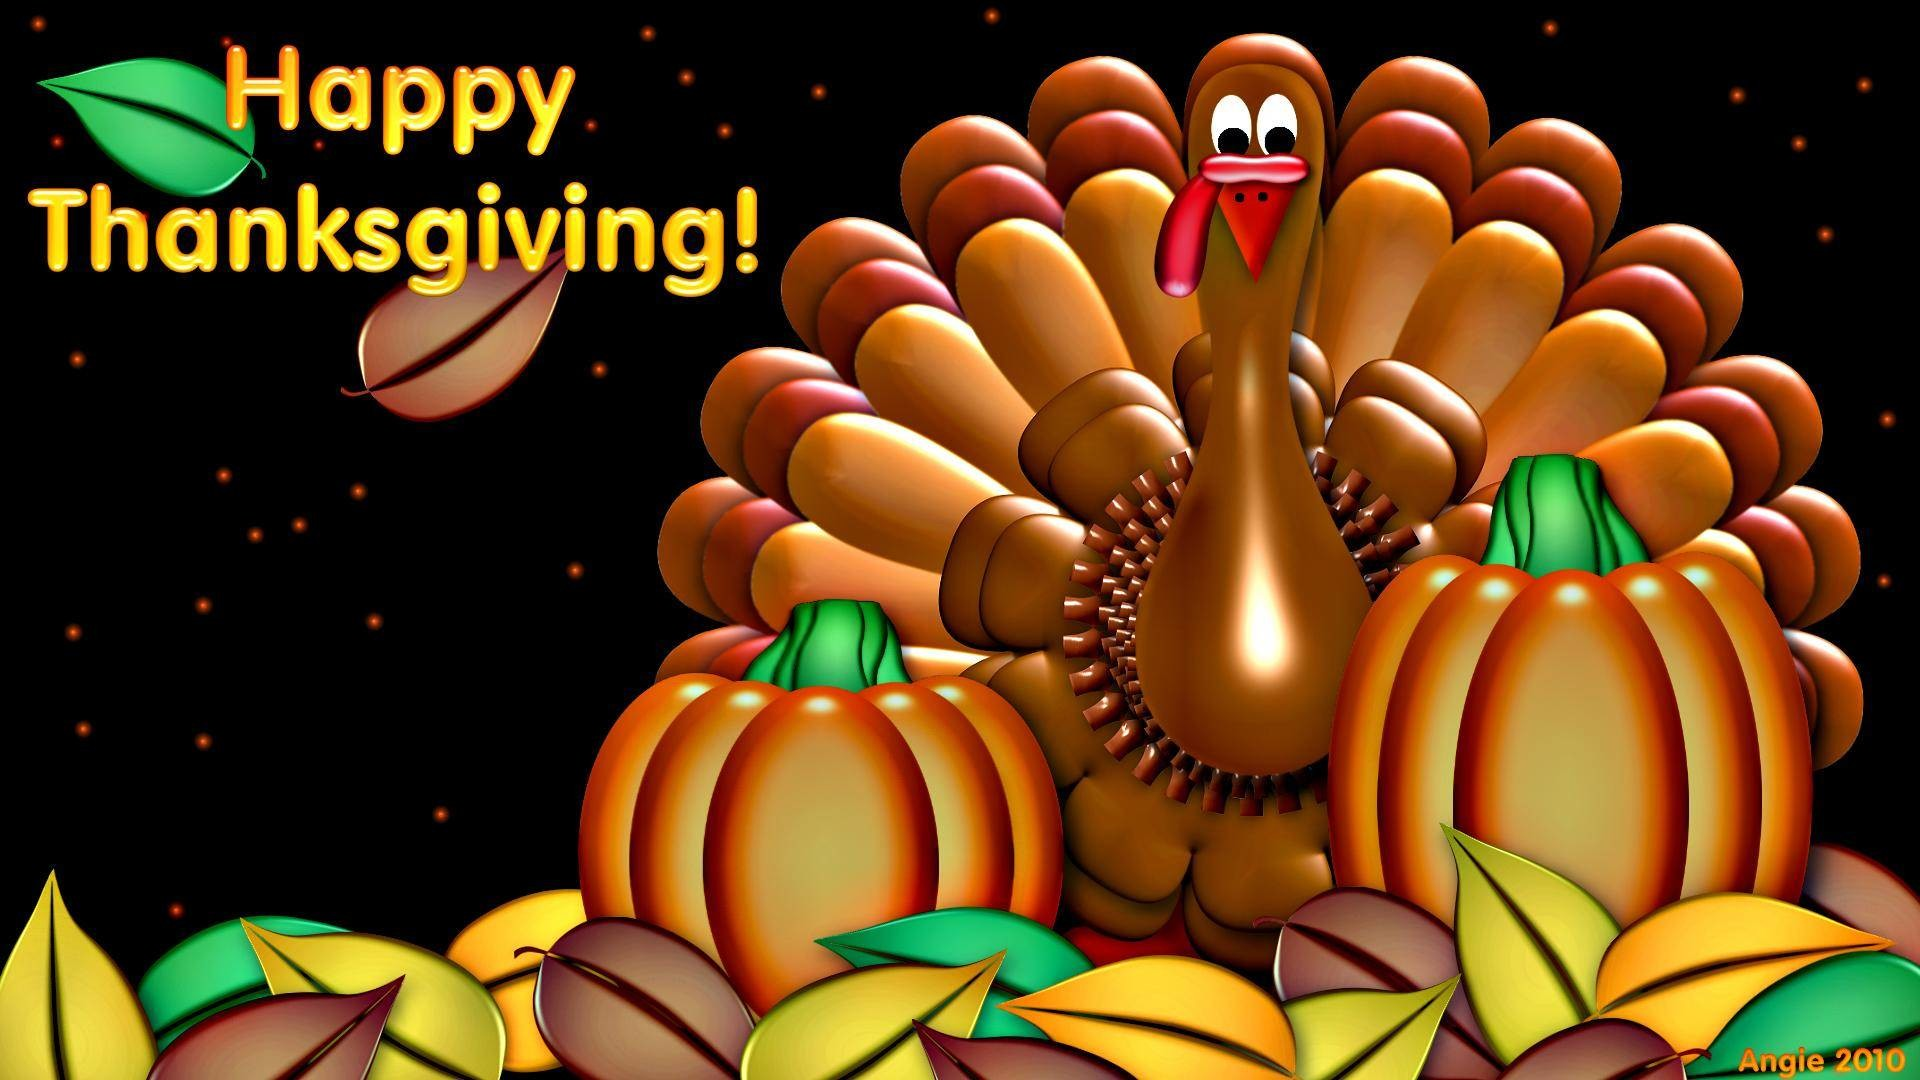 1920x1080 Funny Thanksgiving Wallpaper Backgrounds